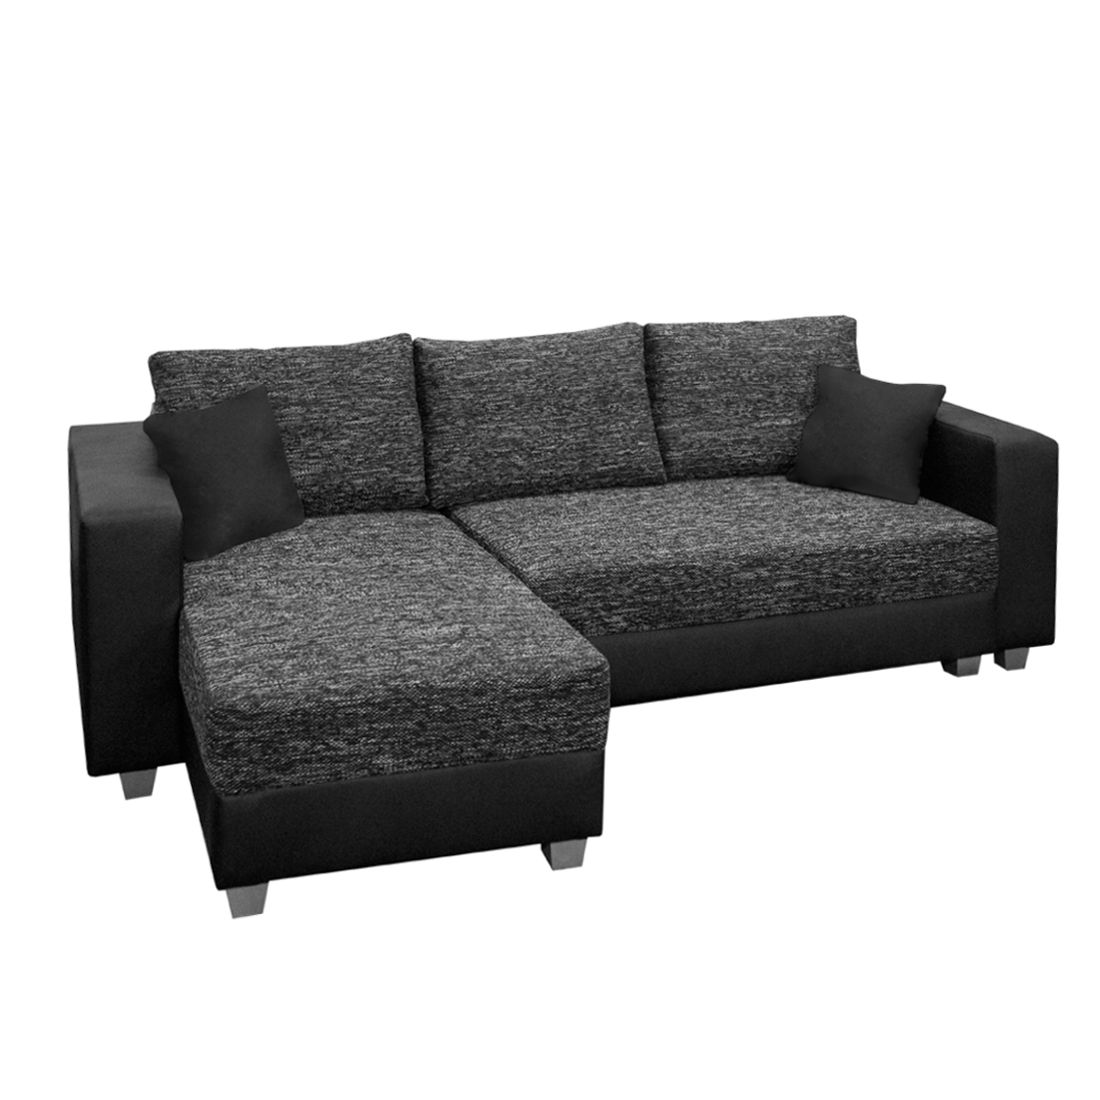 Eck Sofa Pin By Ladendirekt On Sofas Couches Couch Sofa Furniture